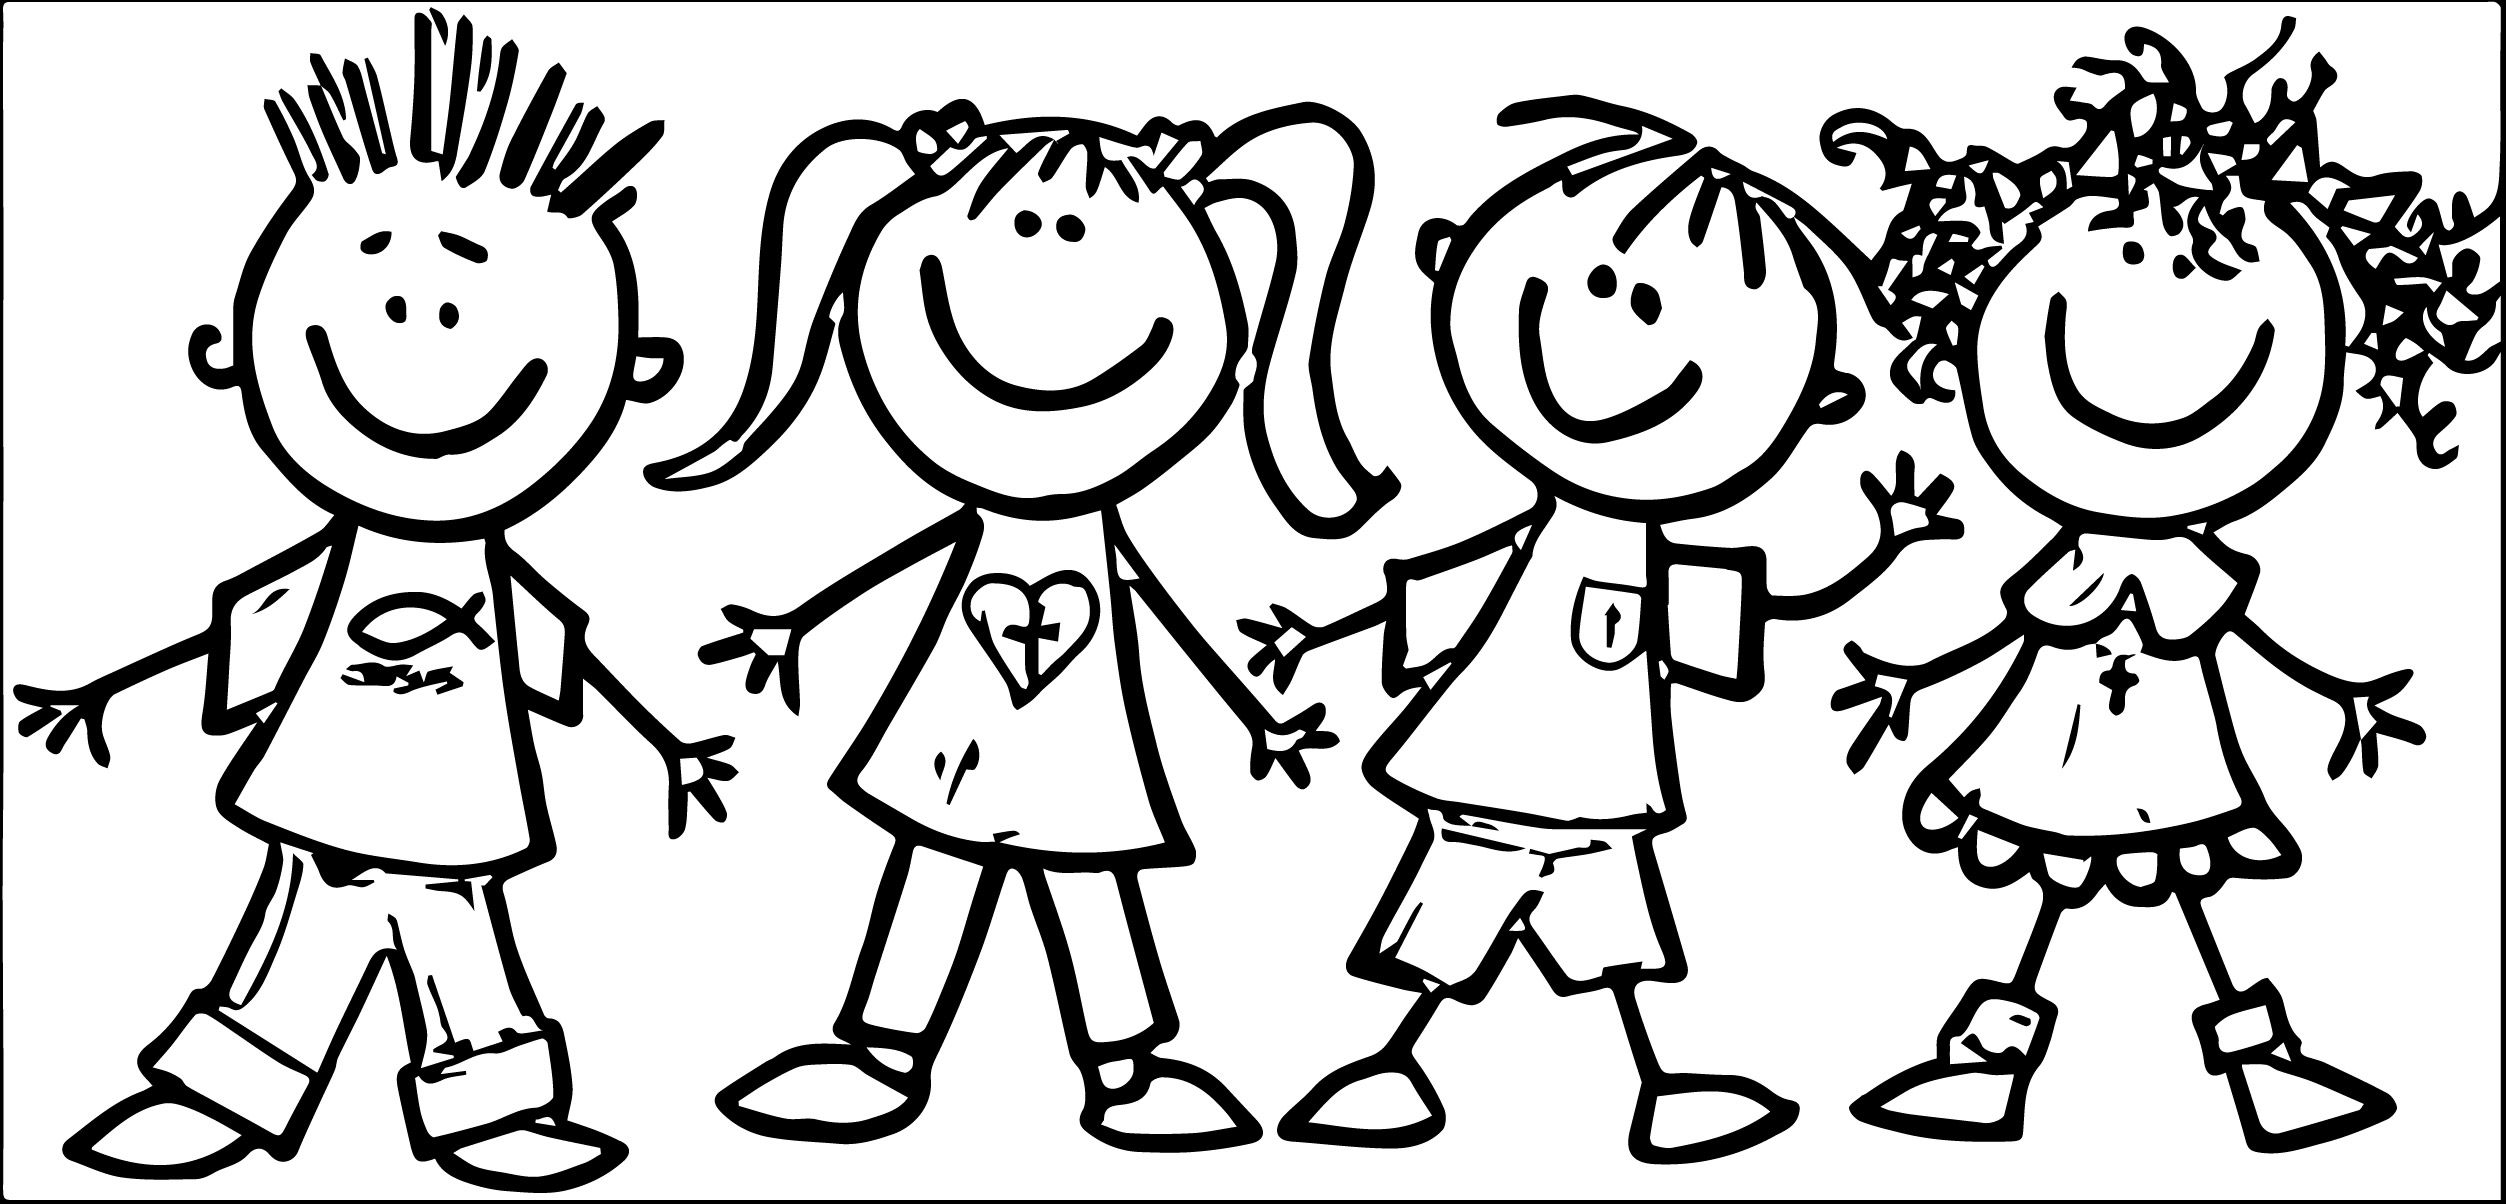 Free Friends Clip Art Black And White, Download Free Clip.